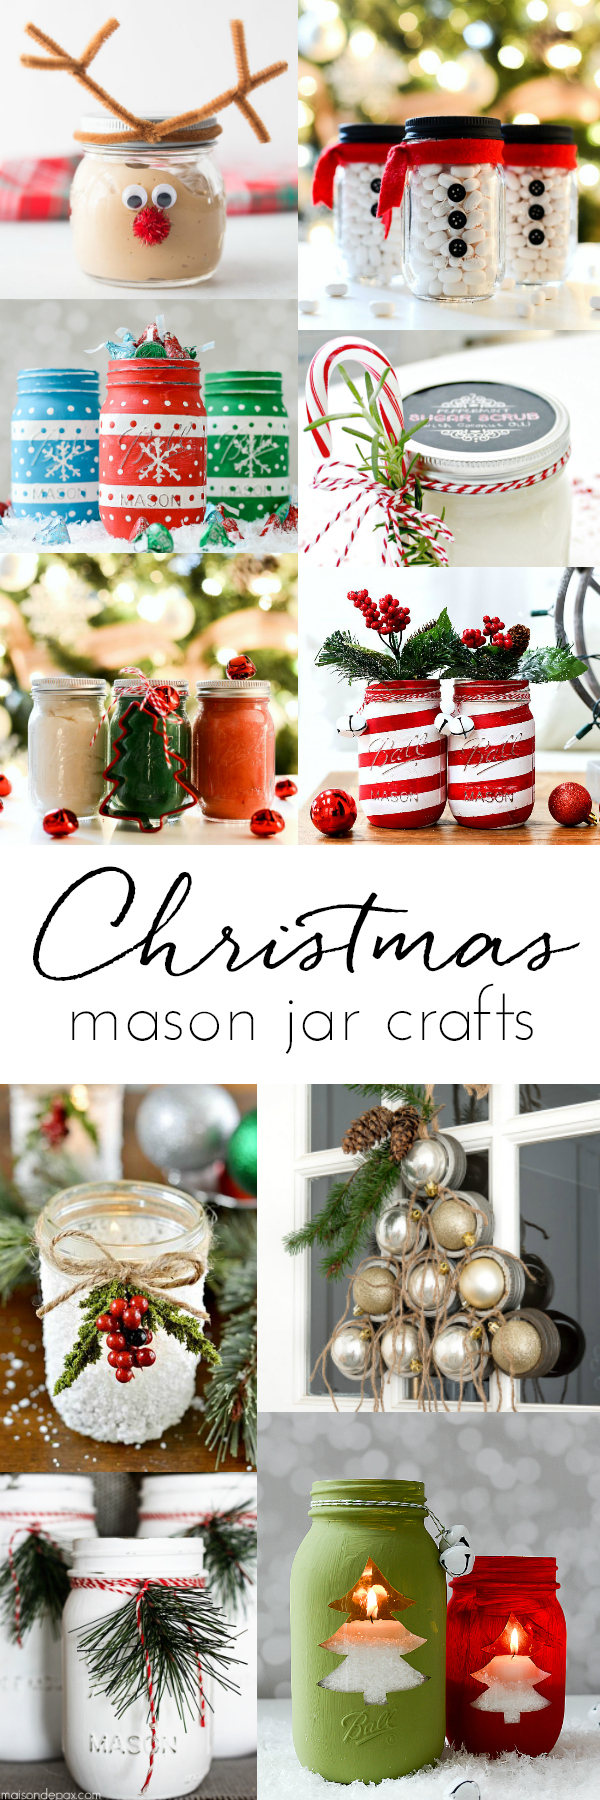 Christmas Mason Jar Craft Ideas